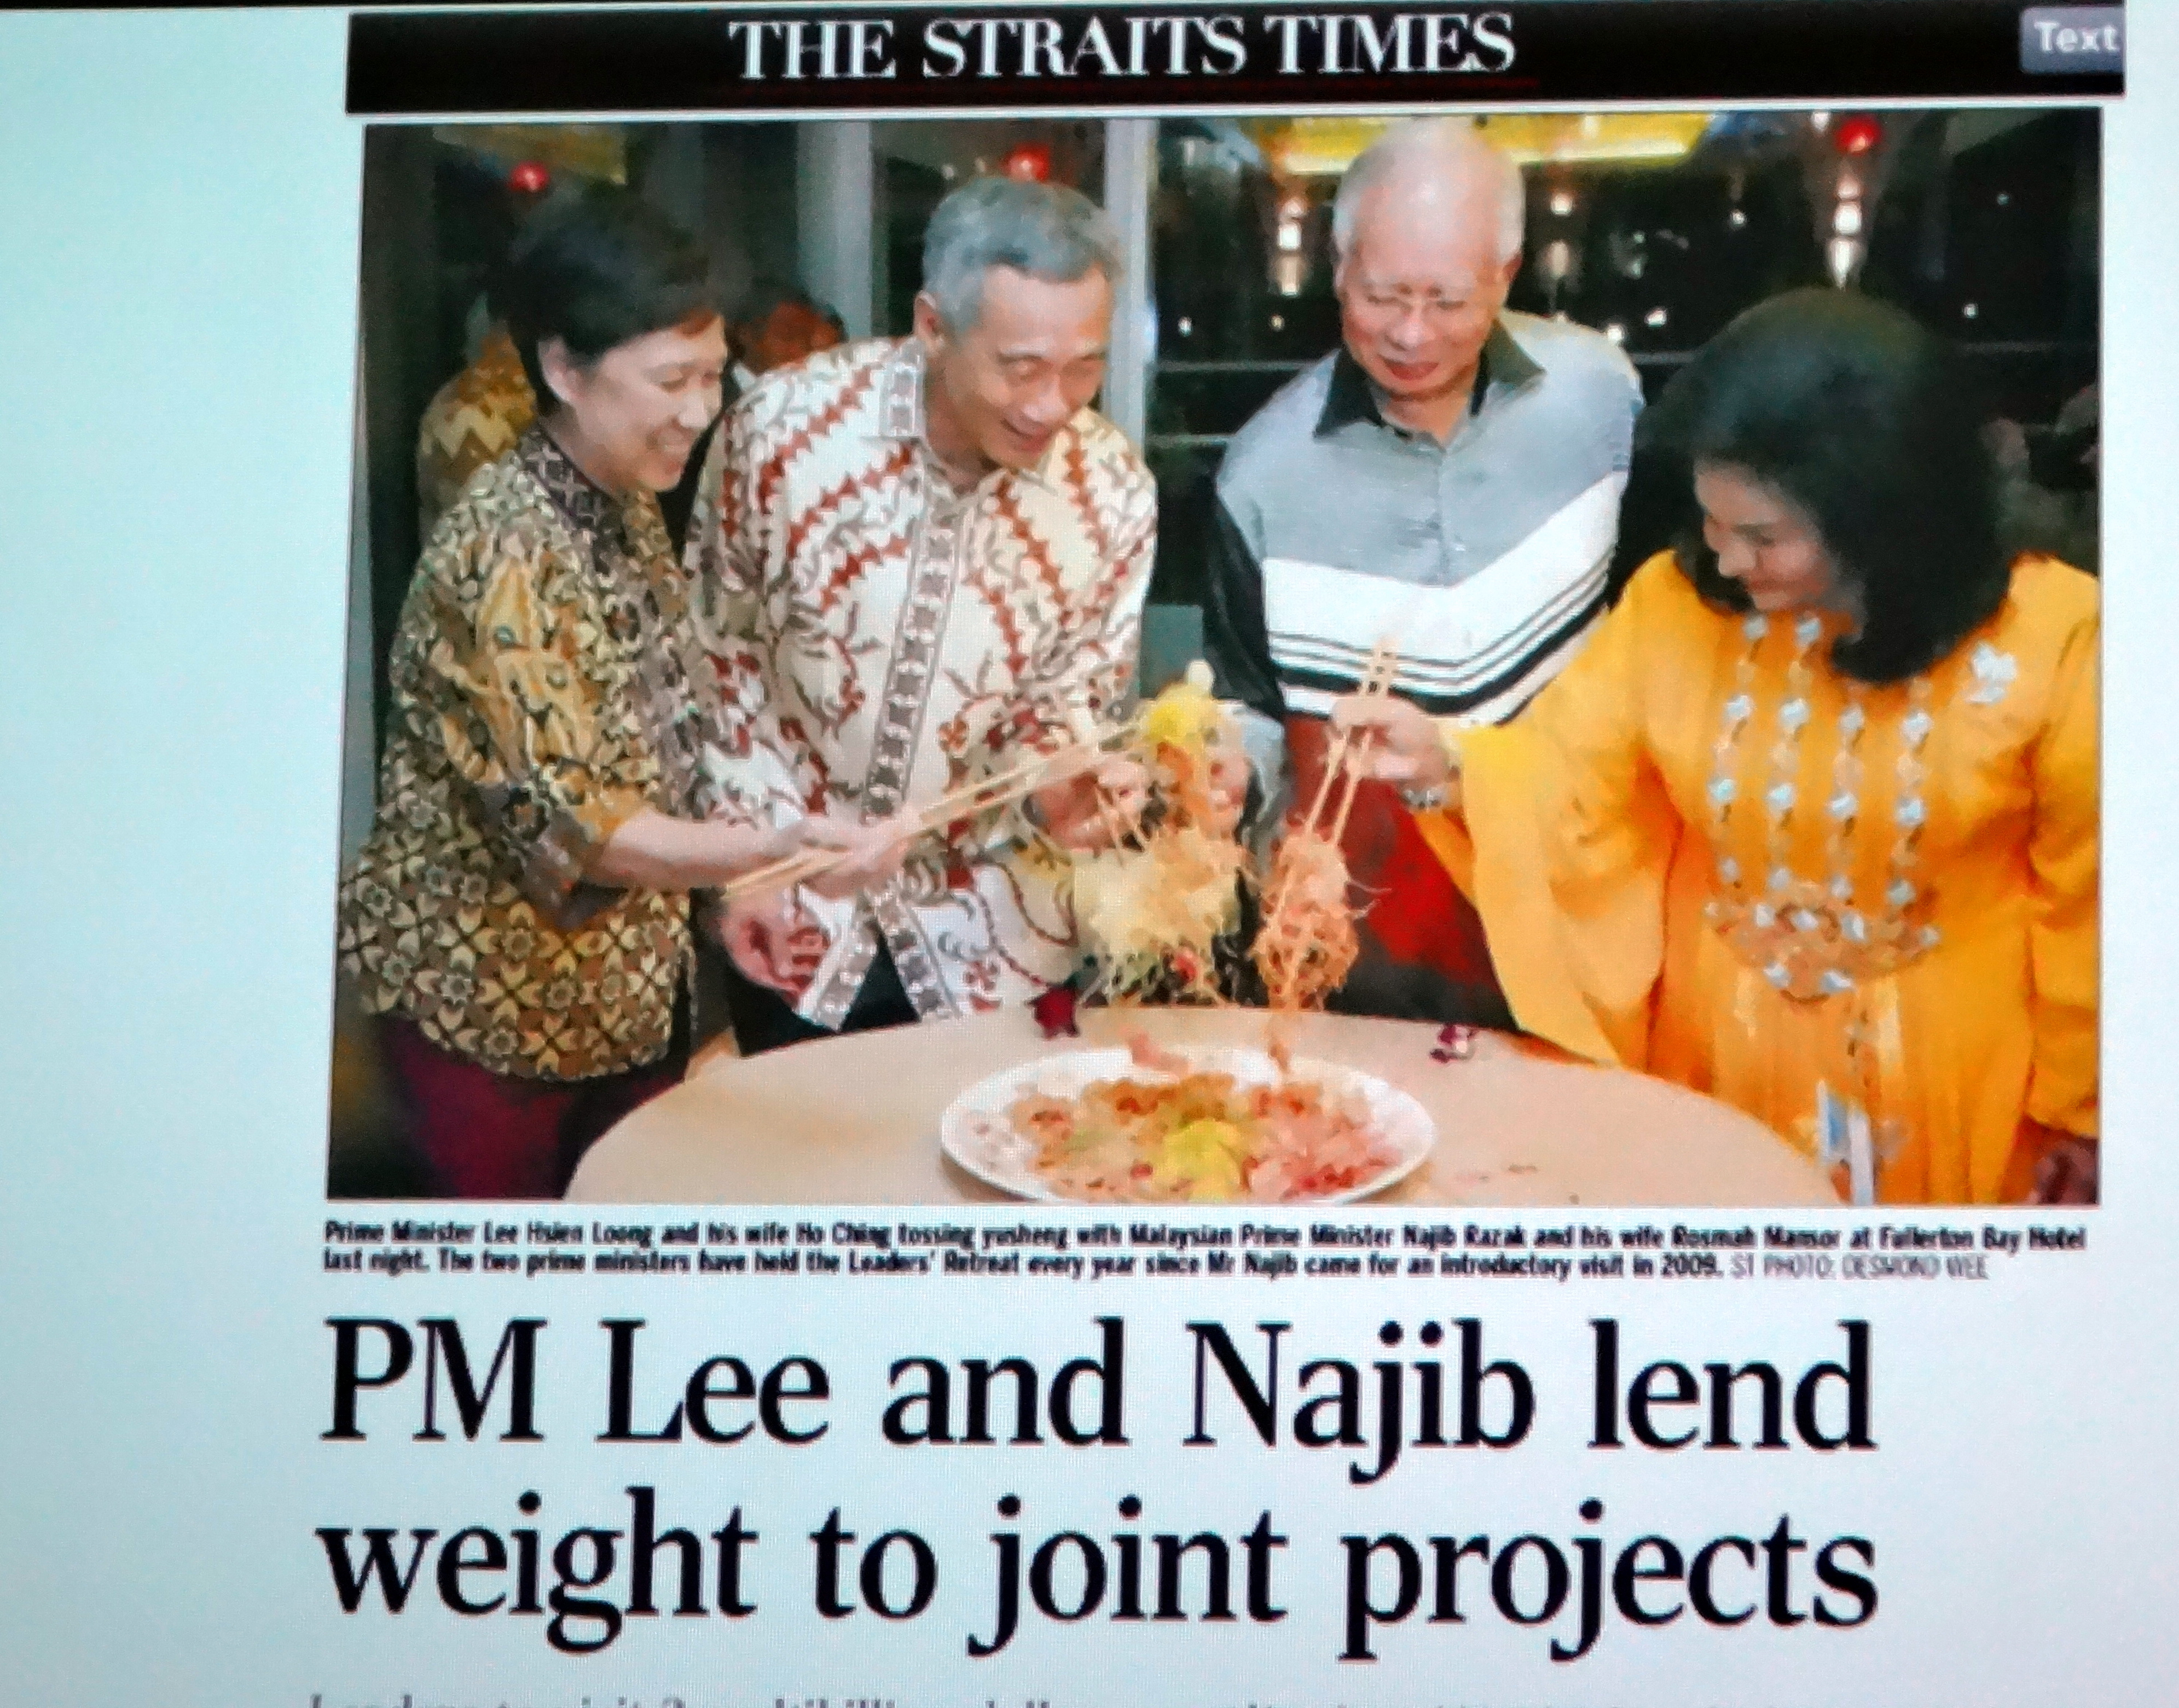 PM Lee and Najib lend weight to jointprojects